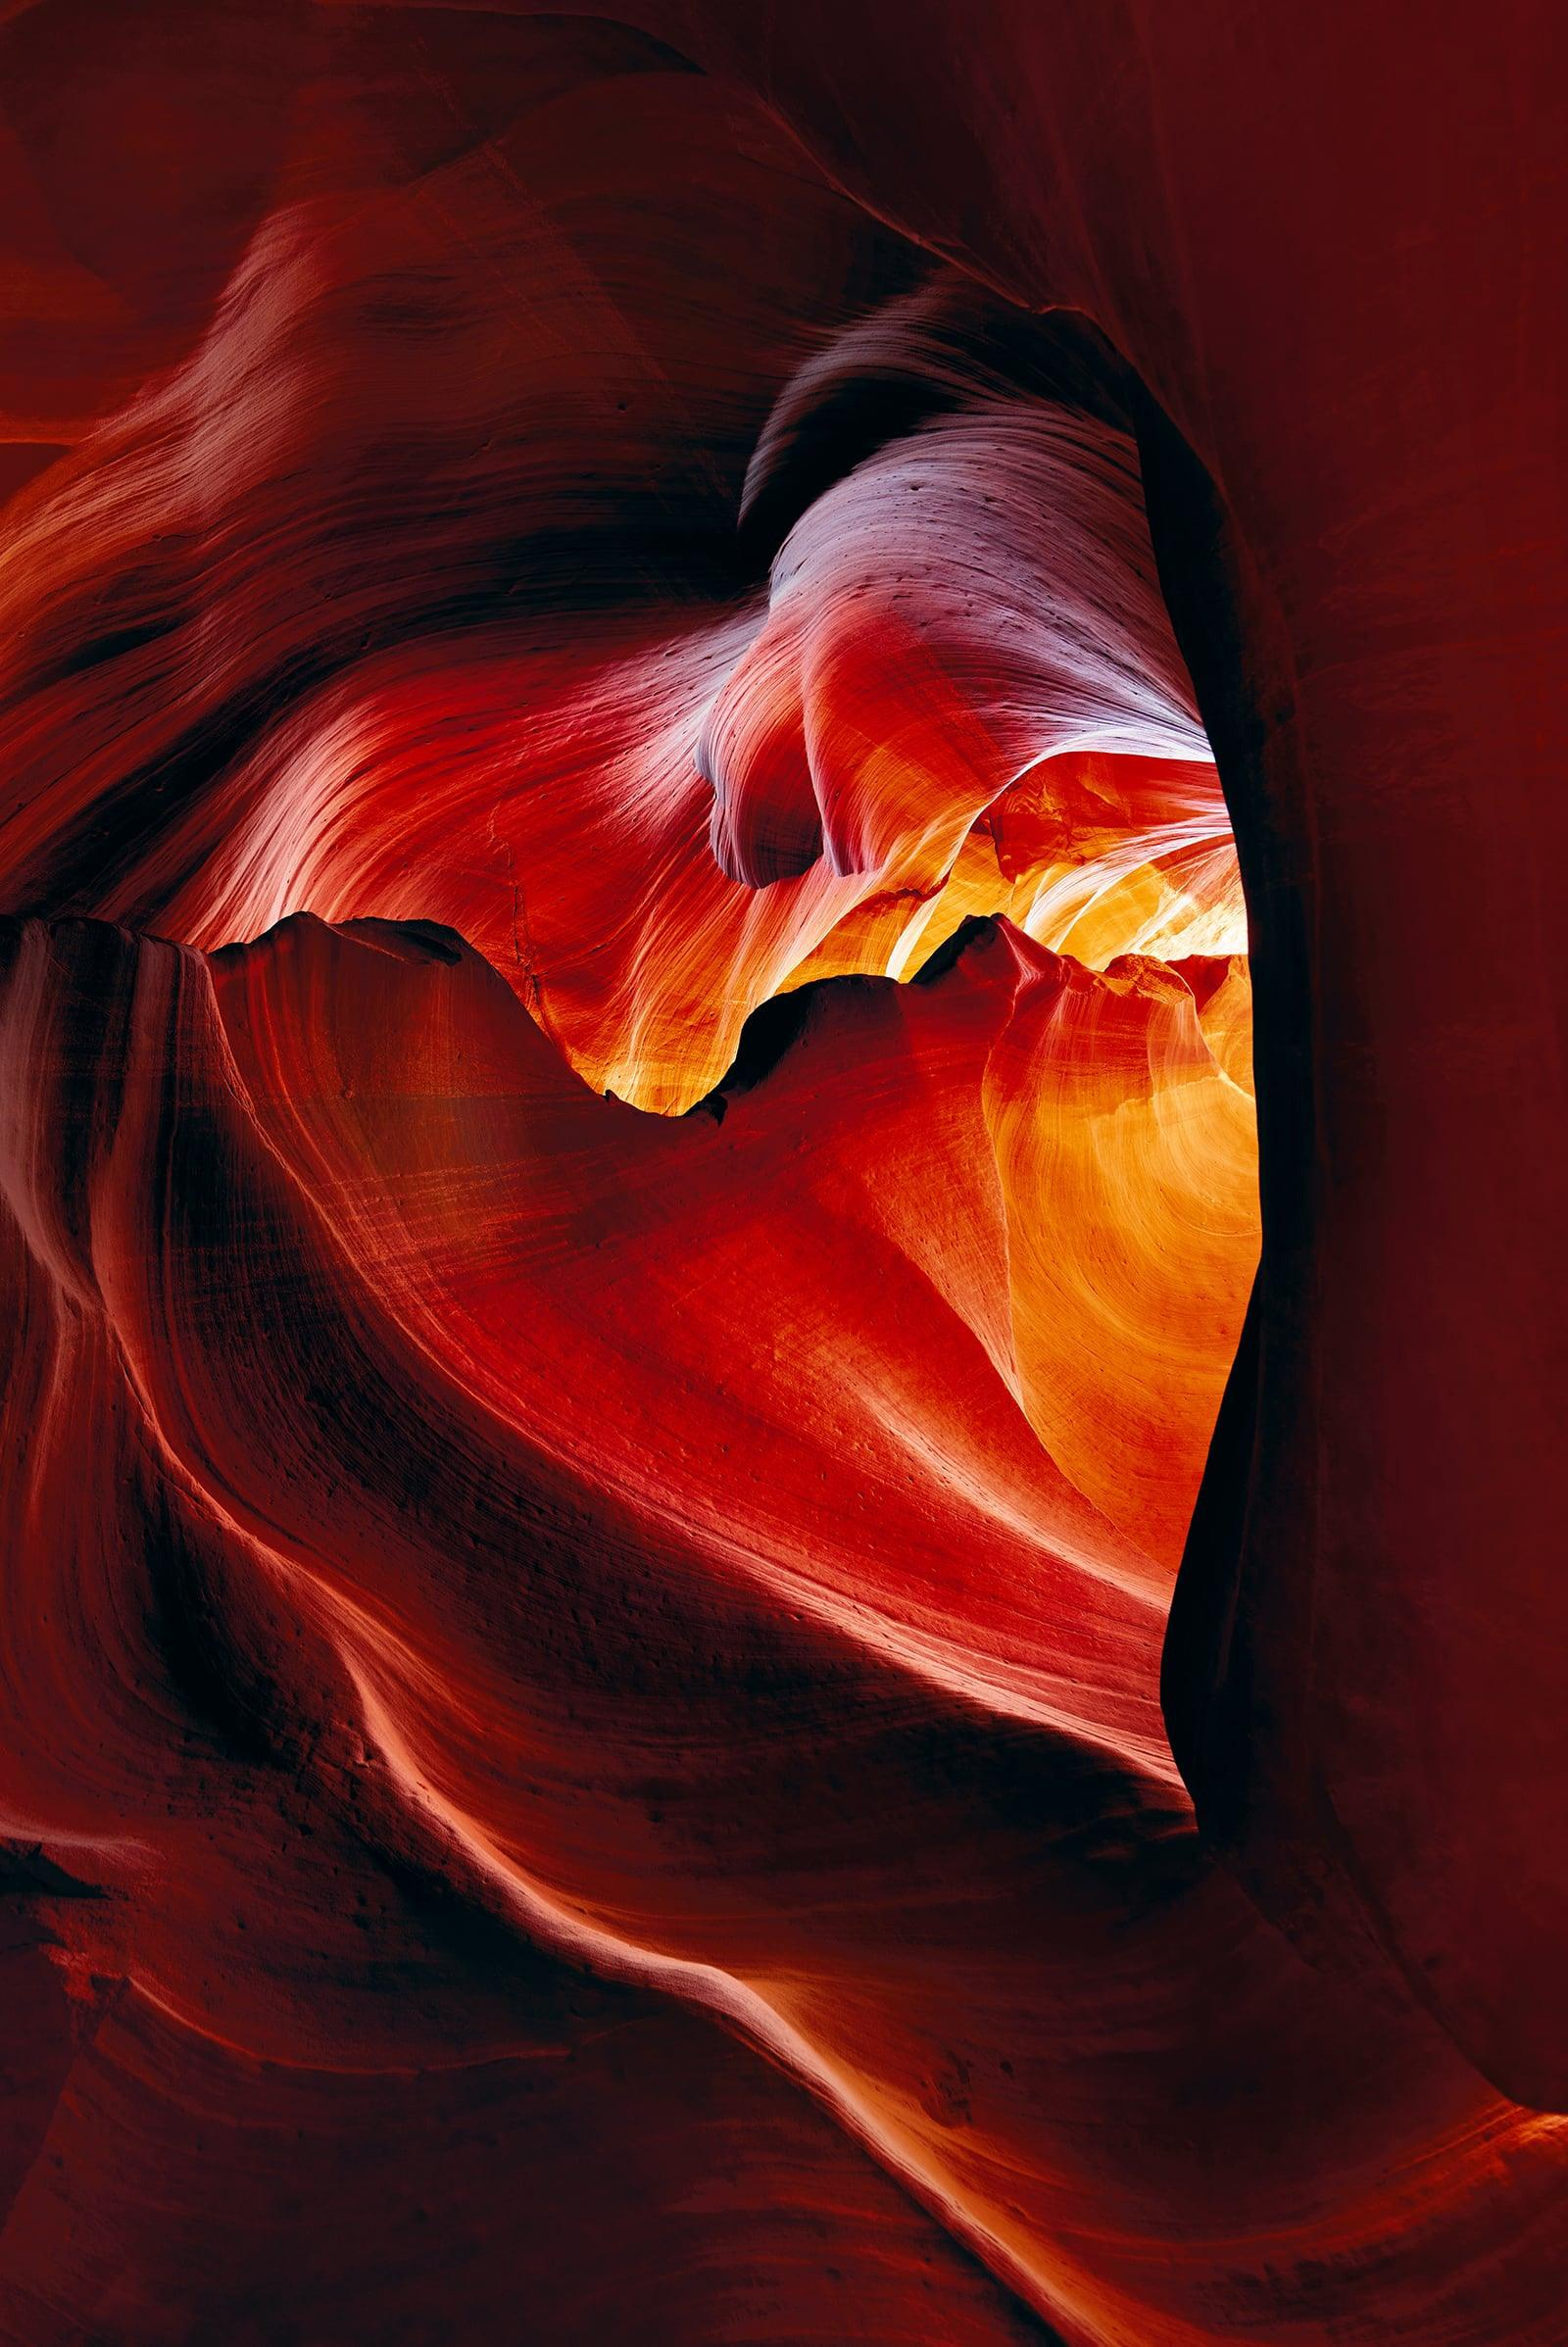 Red and orange heart shaped sandstone cavern within the slot canyons in Antelope Canyon Arizona